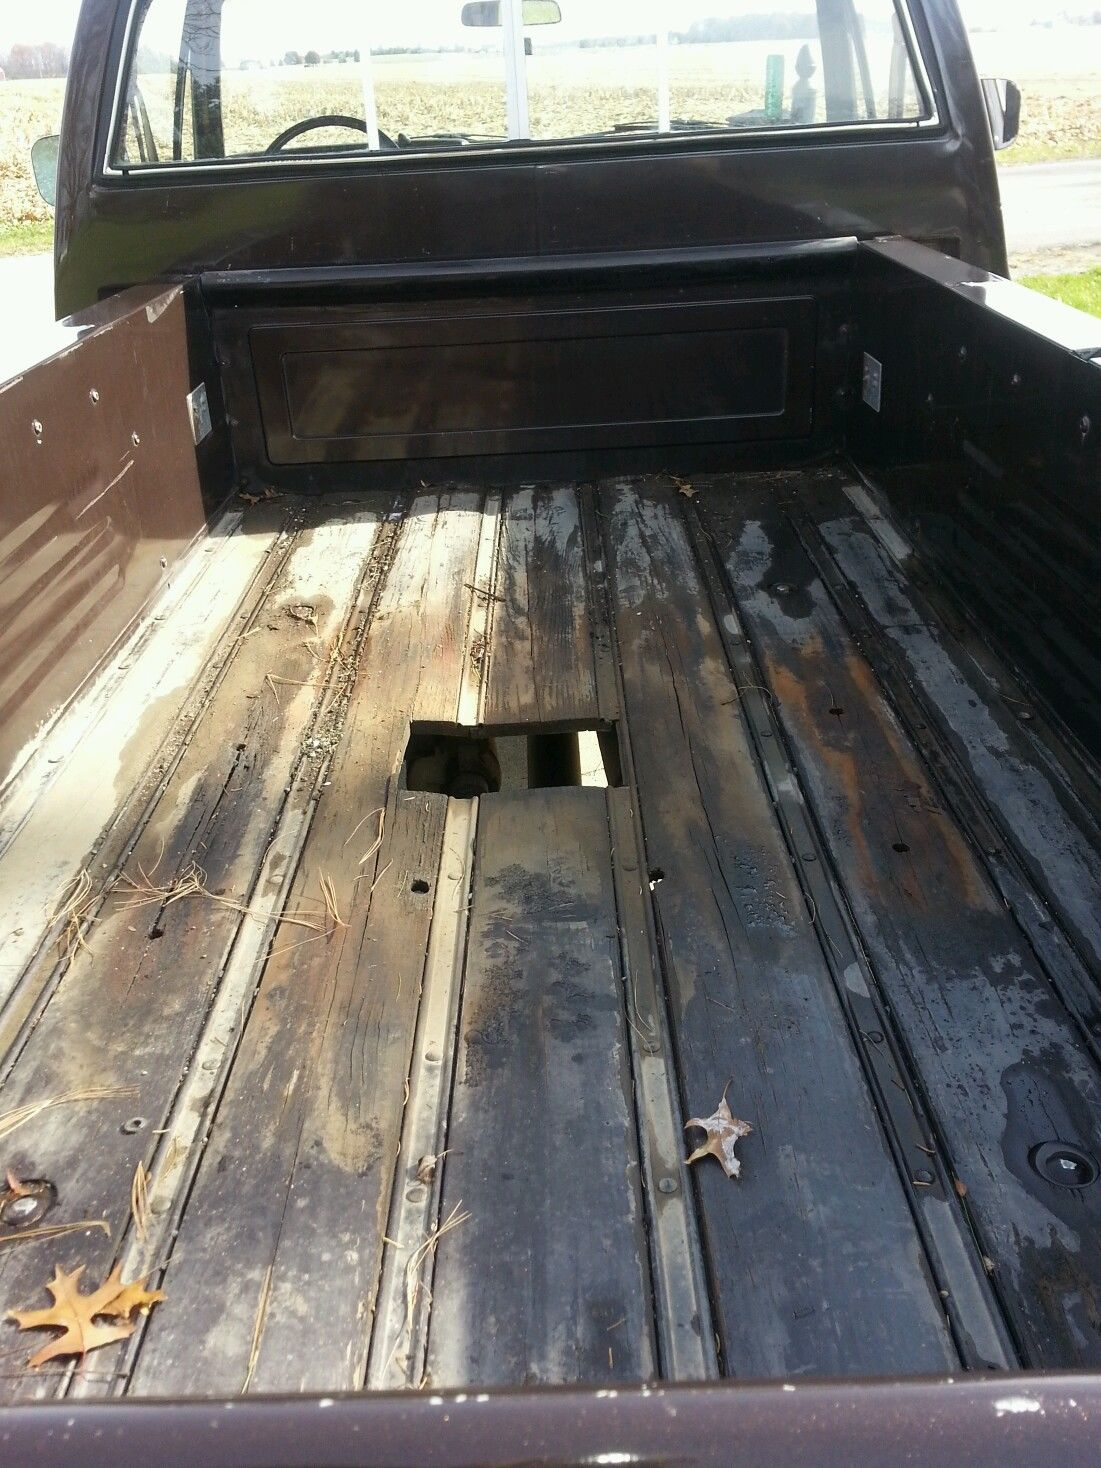 Gmc Truck Beds For Sale >> 1985 k30/3500 chevy/GMC 1 ton 4x4 stepside long bed ...